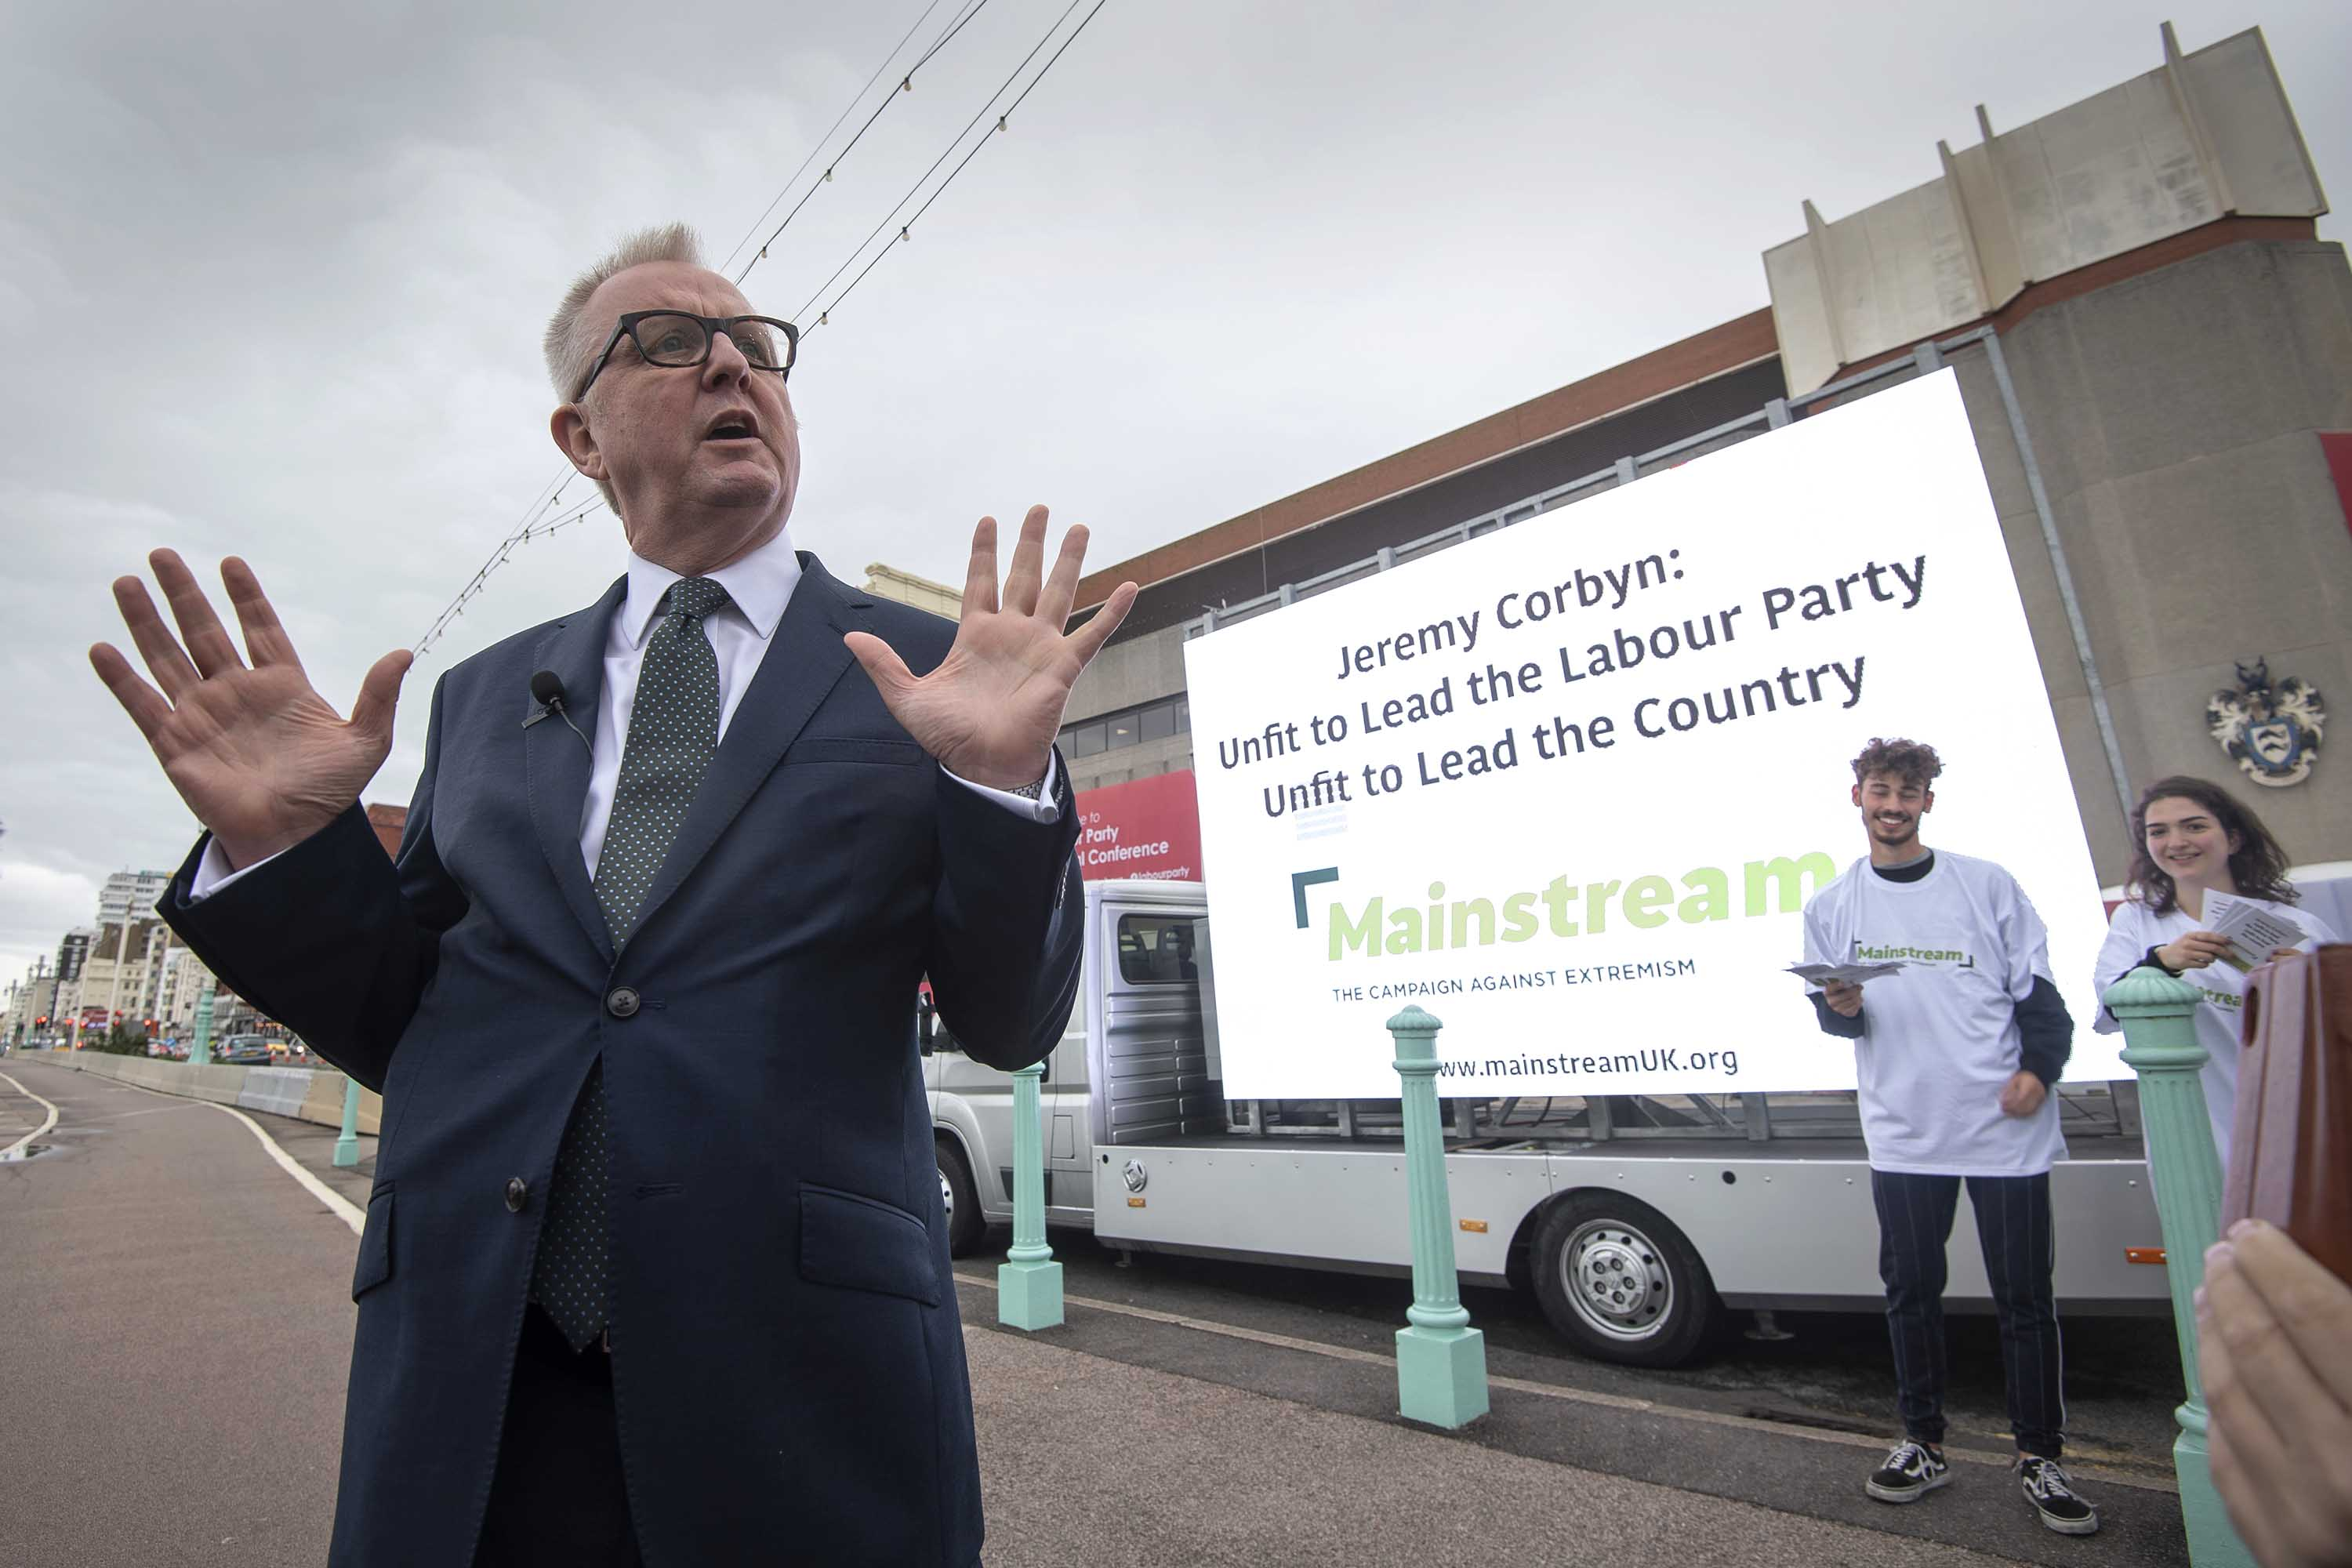 Former Labour MP Ian Austin speaks outside the Labour Party Conference in Brighton, England on September 22. Photo: Victoria Jones/PA Images via Getty Images